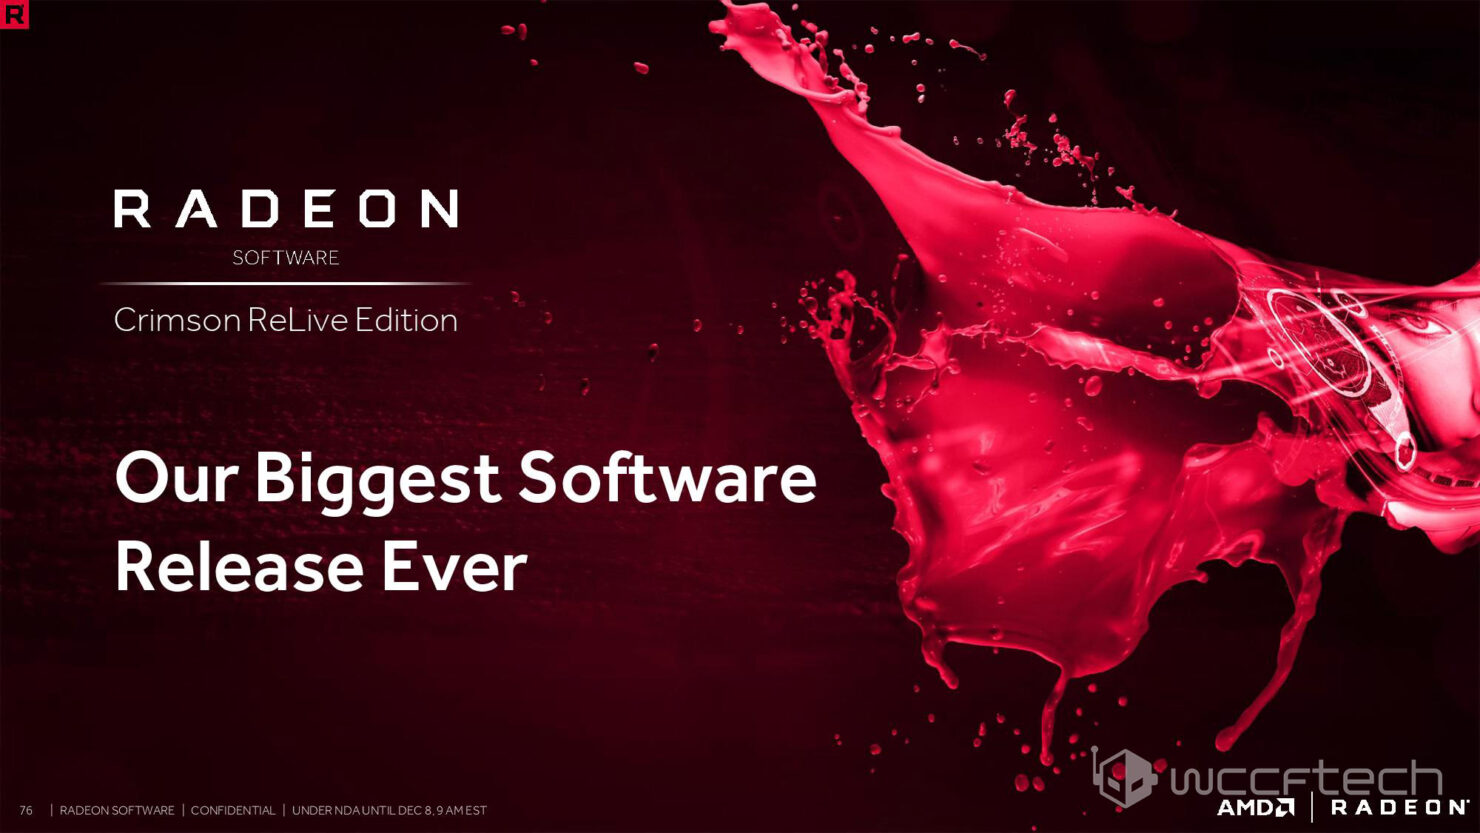 radeon-software-crimson-relive-nda-only-confidential-v4-page-075-copy